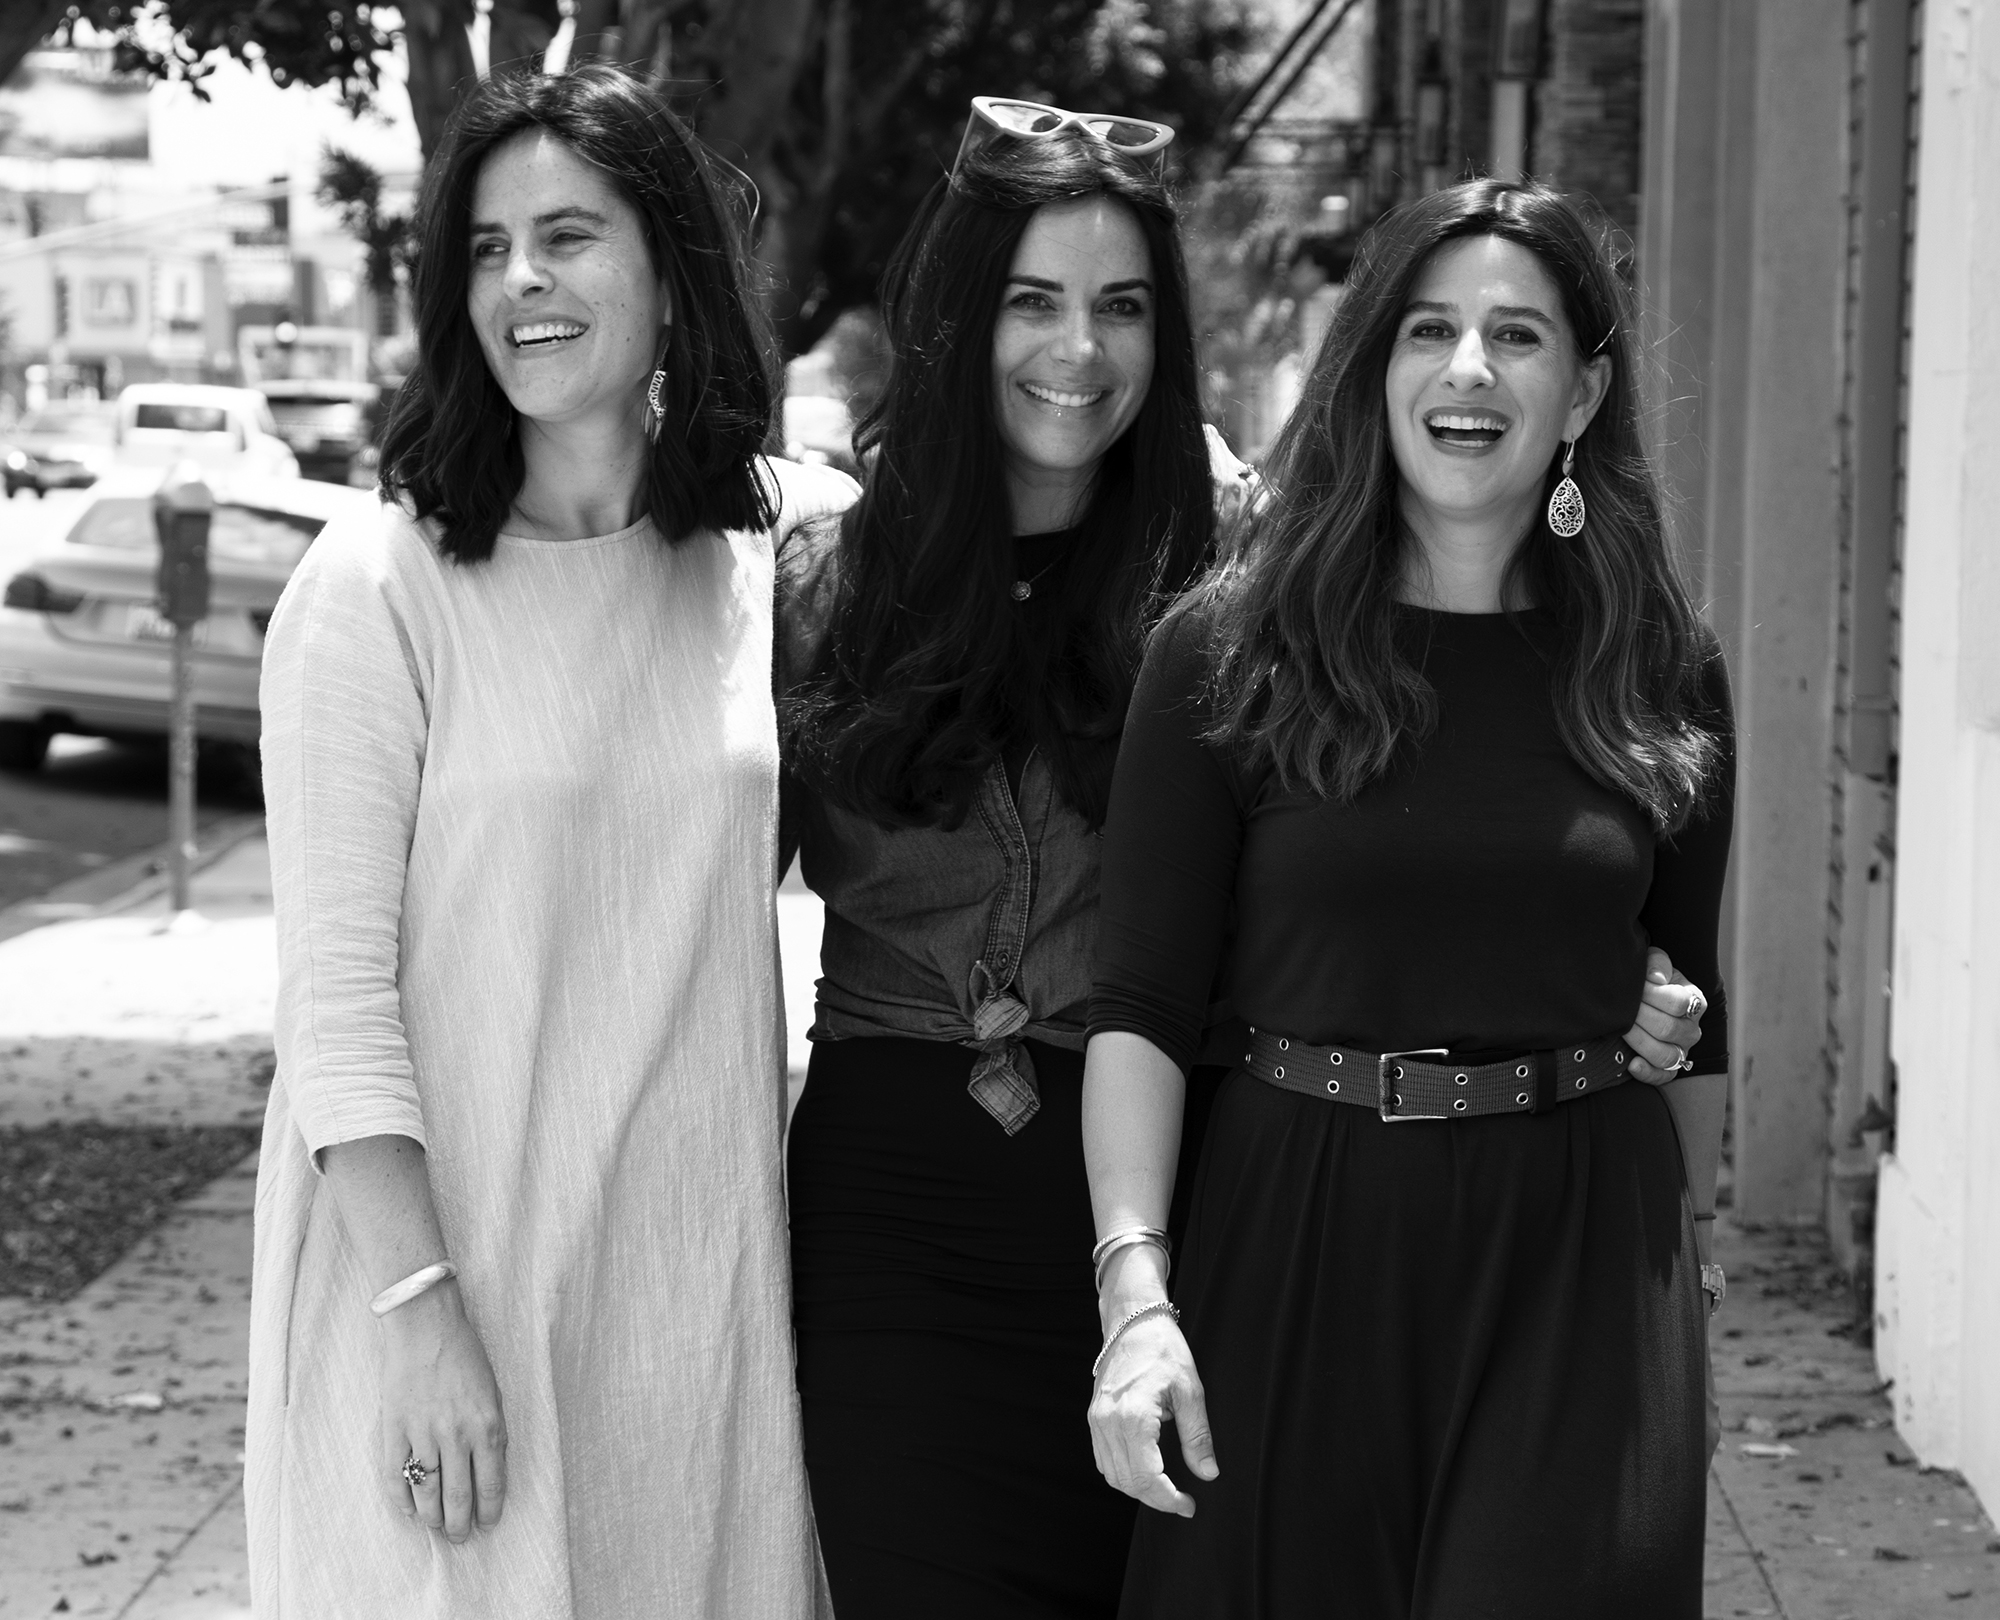 LCW alum Elaina Kornfield launched a fashion line with her sisters.